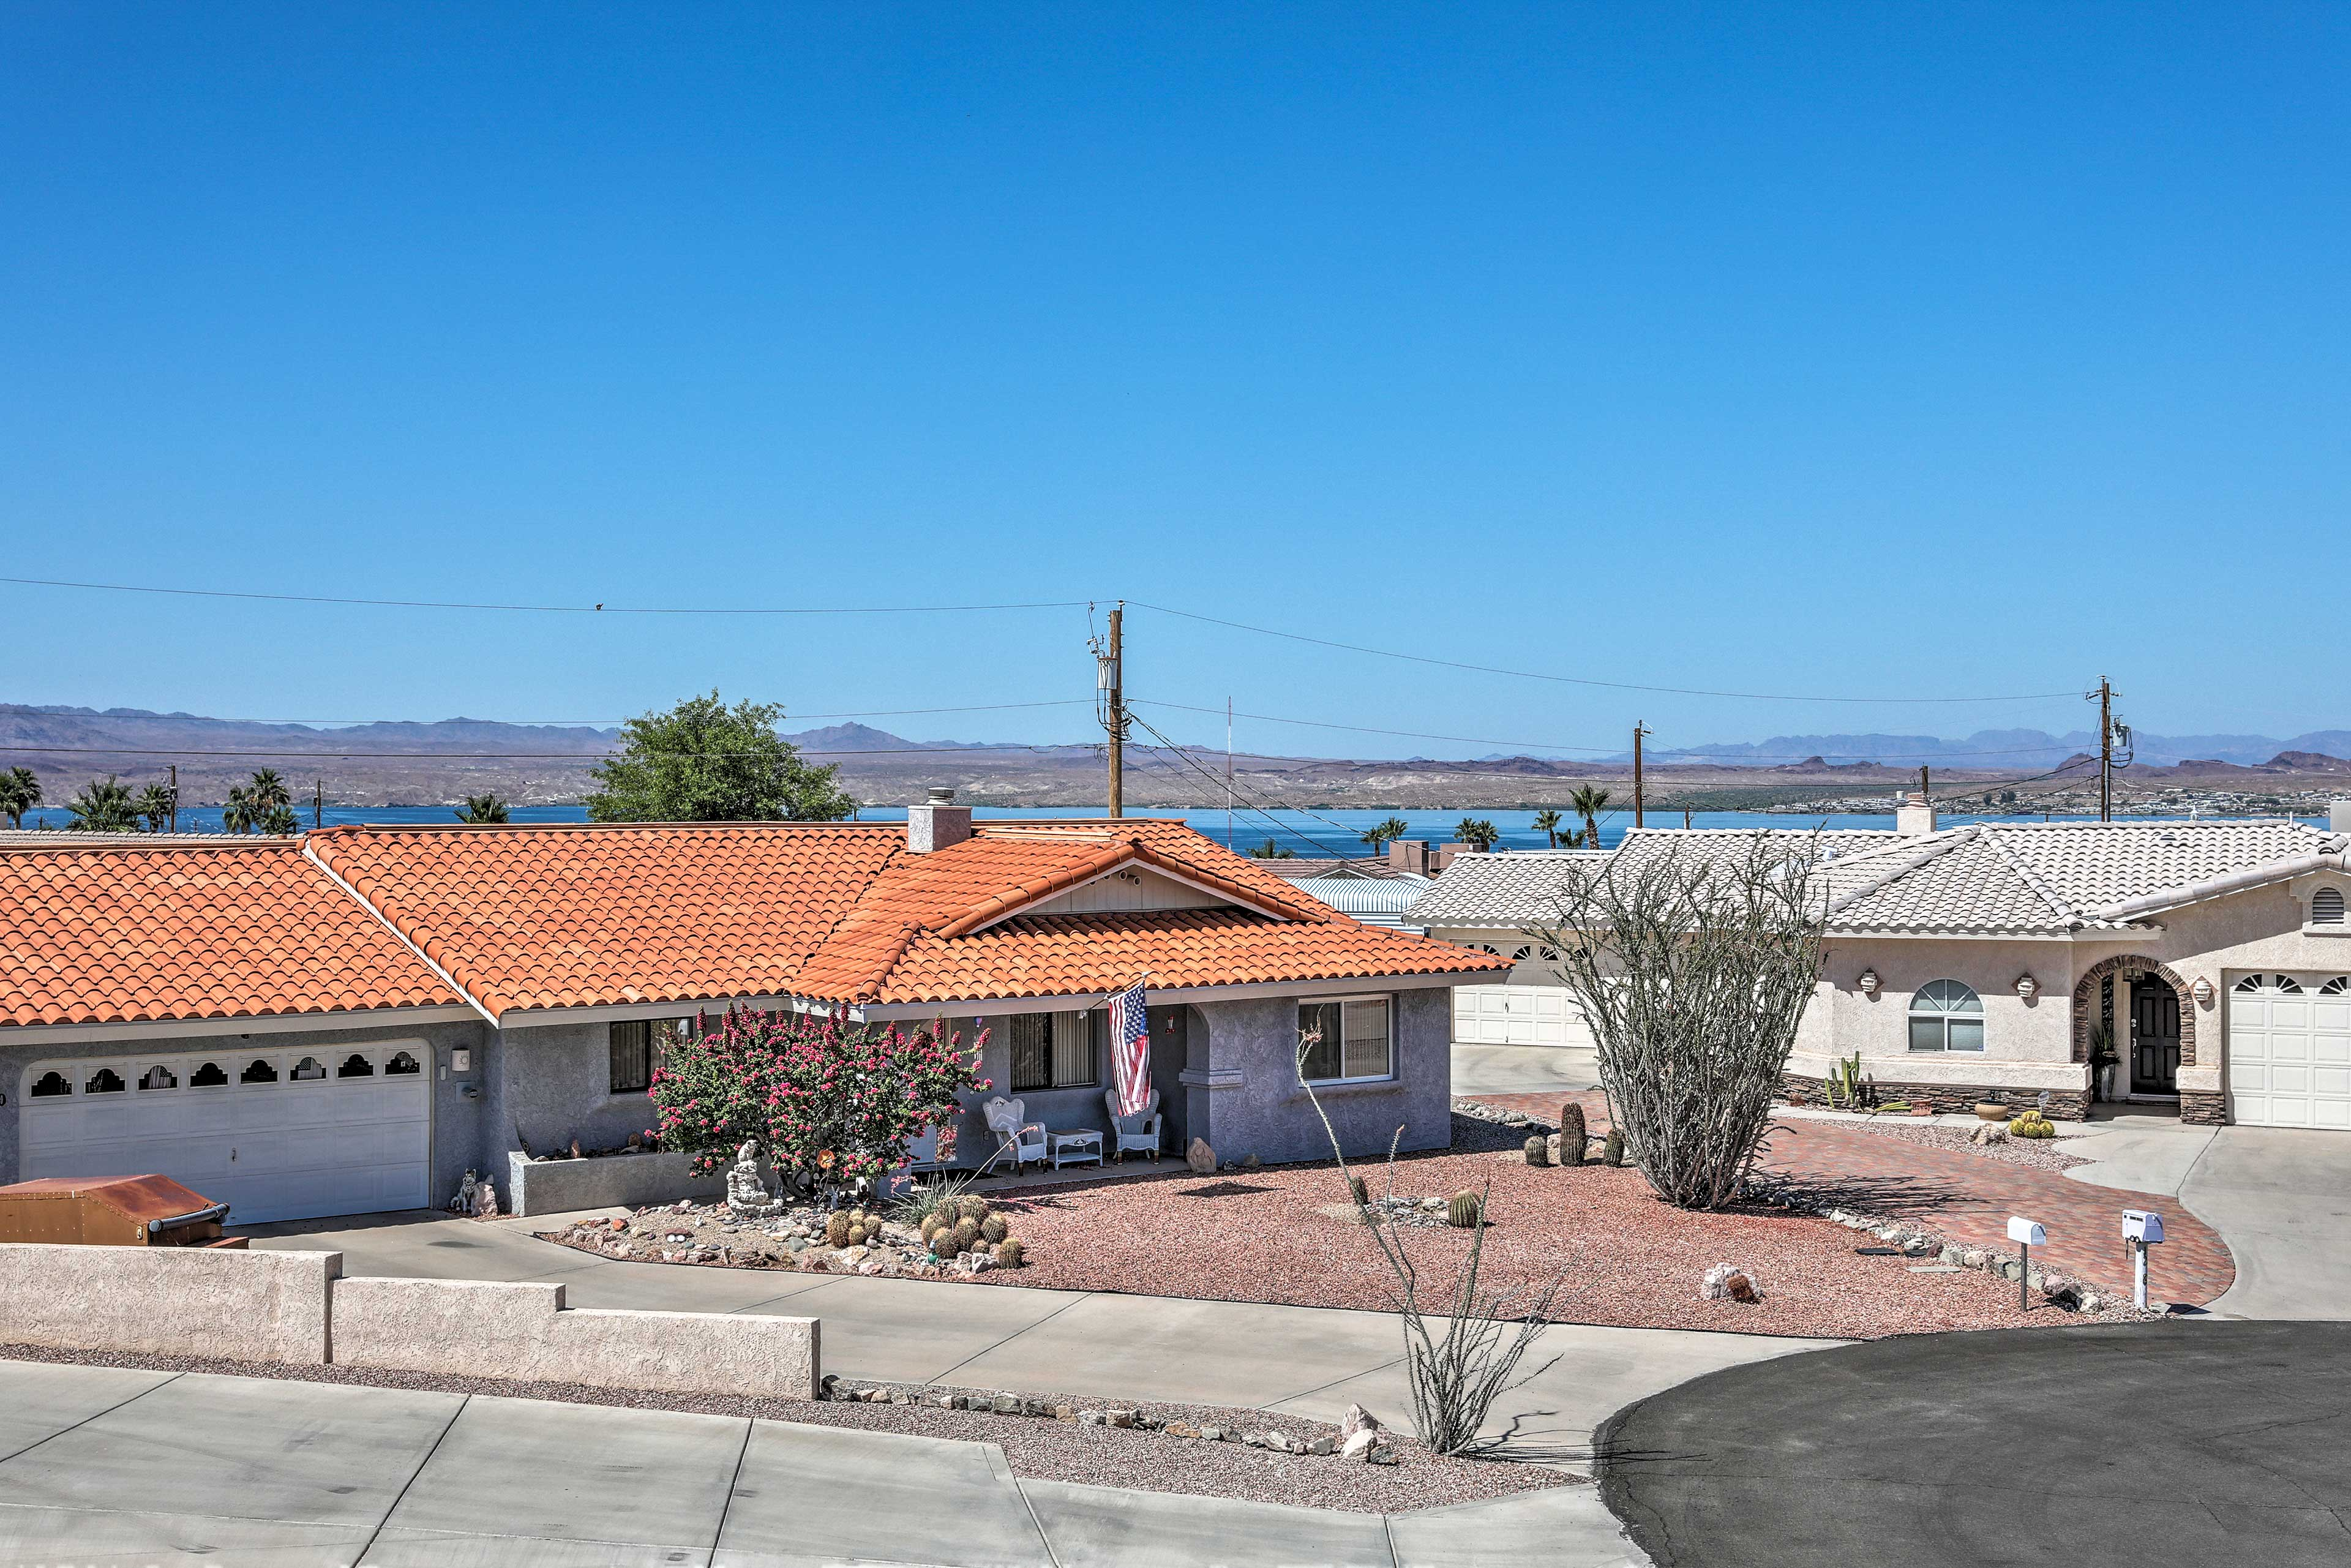 You'll be able to see Lake Havasu from here!